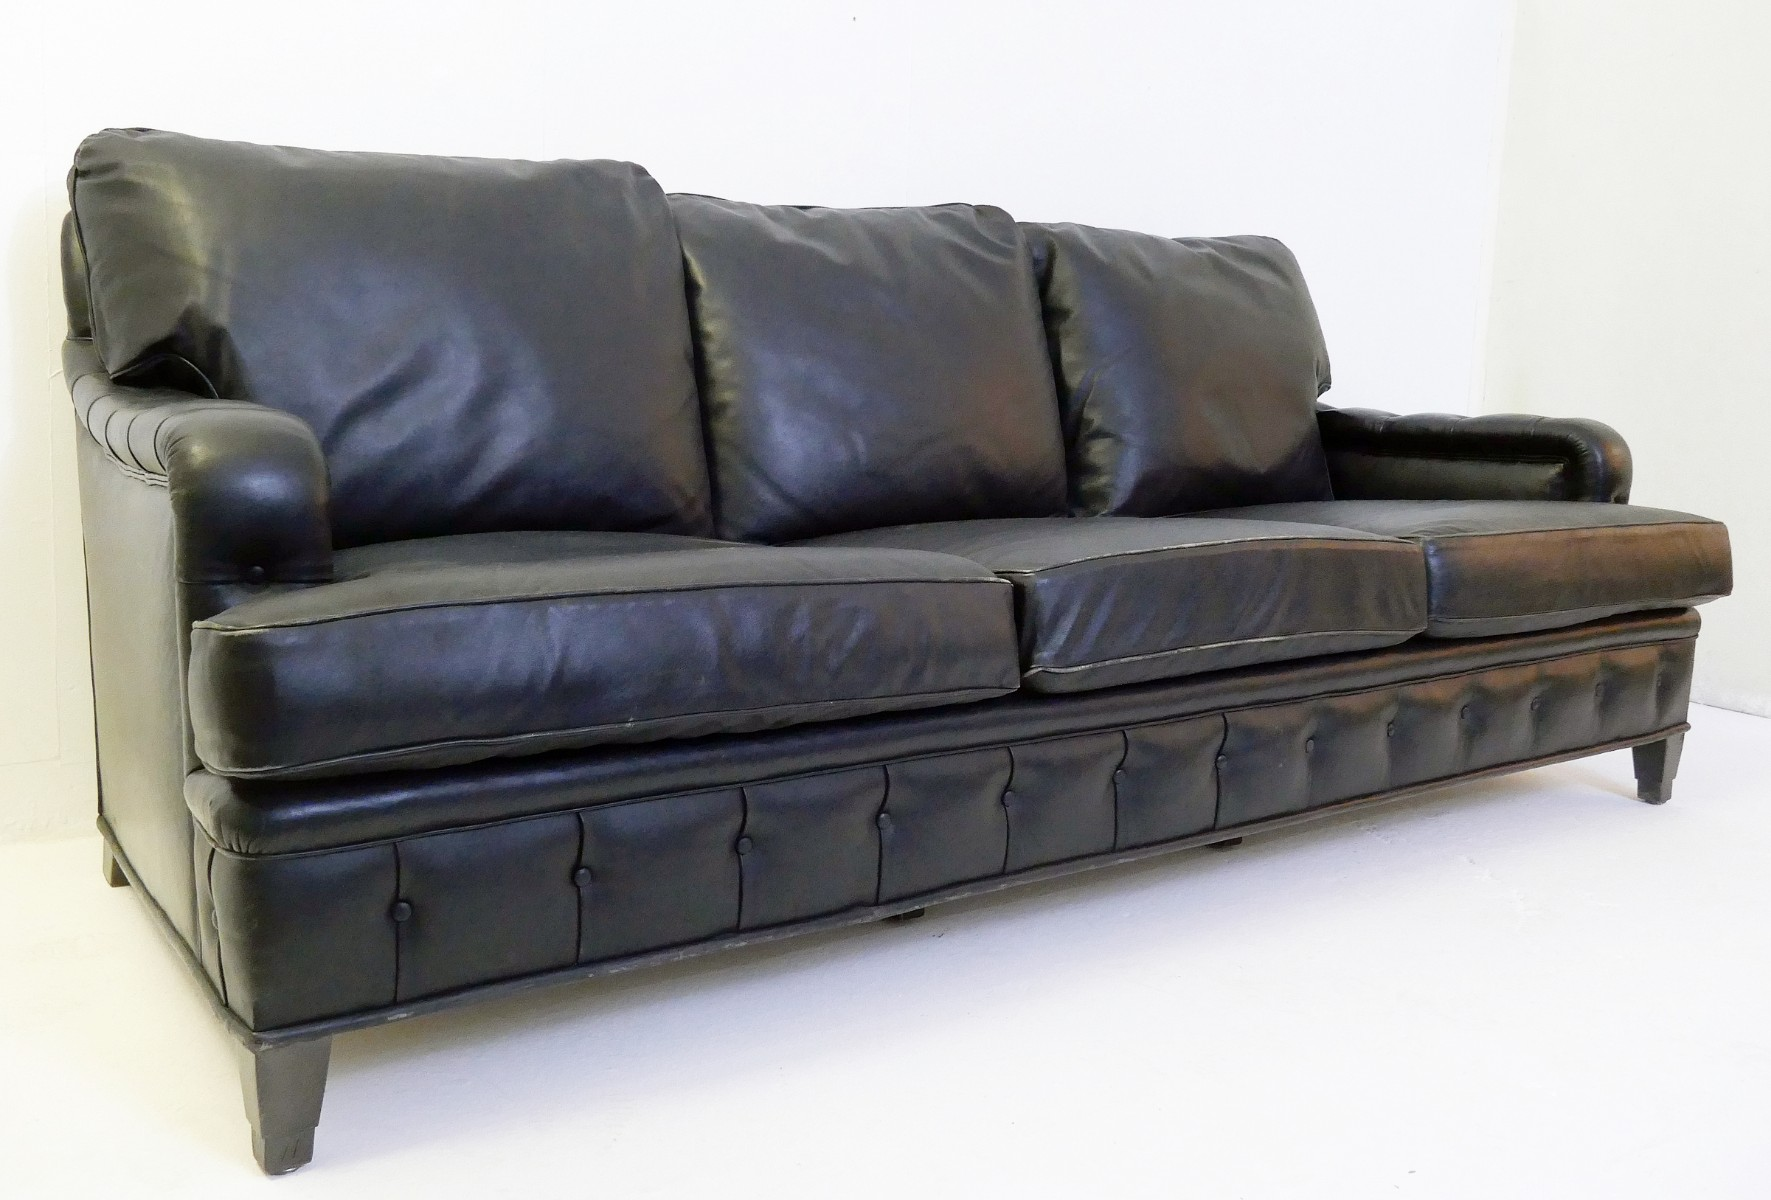 3 Seater Black Leather Sofa | The 16 Best Sofas And Couches You Can ...